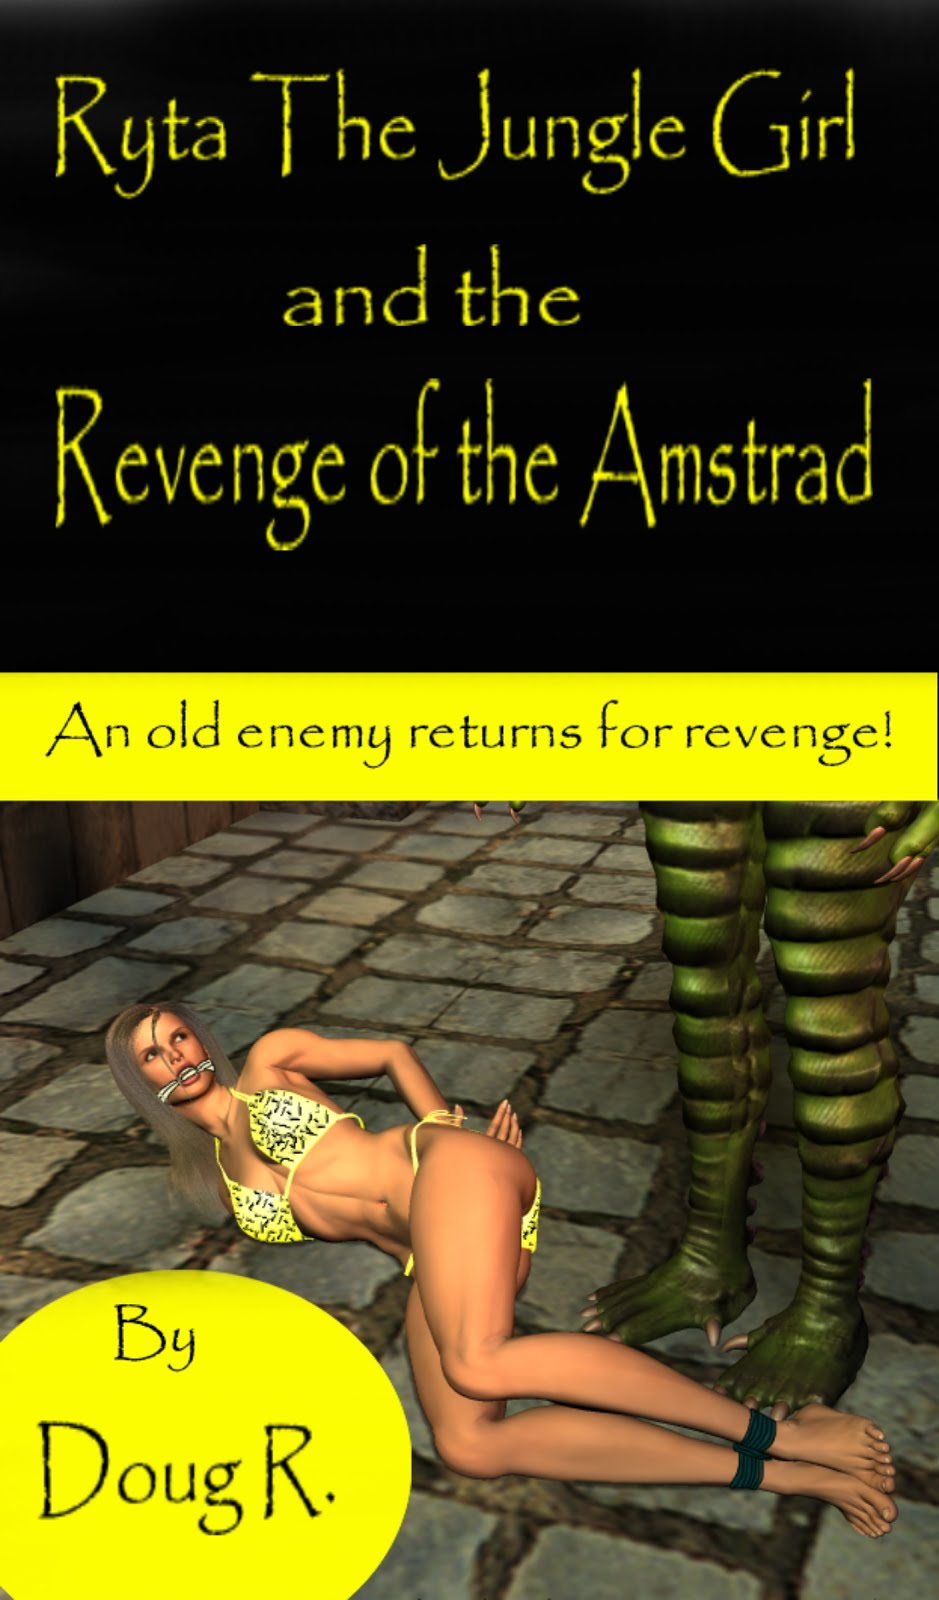 Ryta the Jungle Girl and the Revenge of the Amstrad